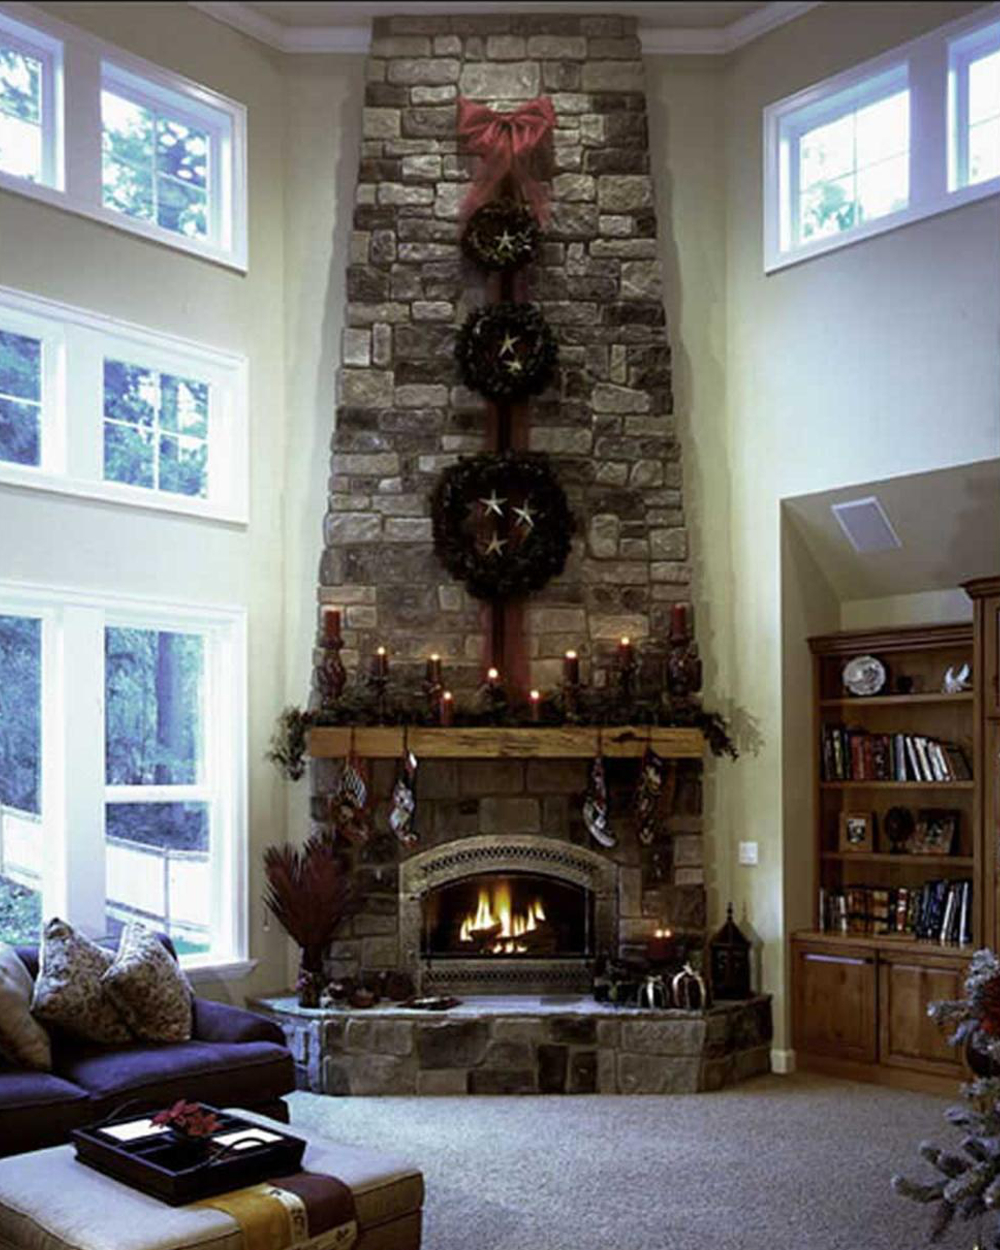 Great room with stacked wreaths over the fireplace.